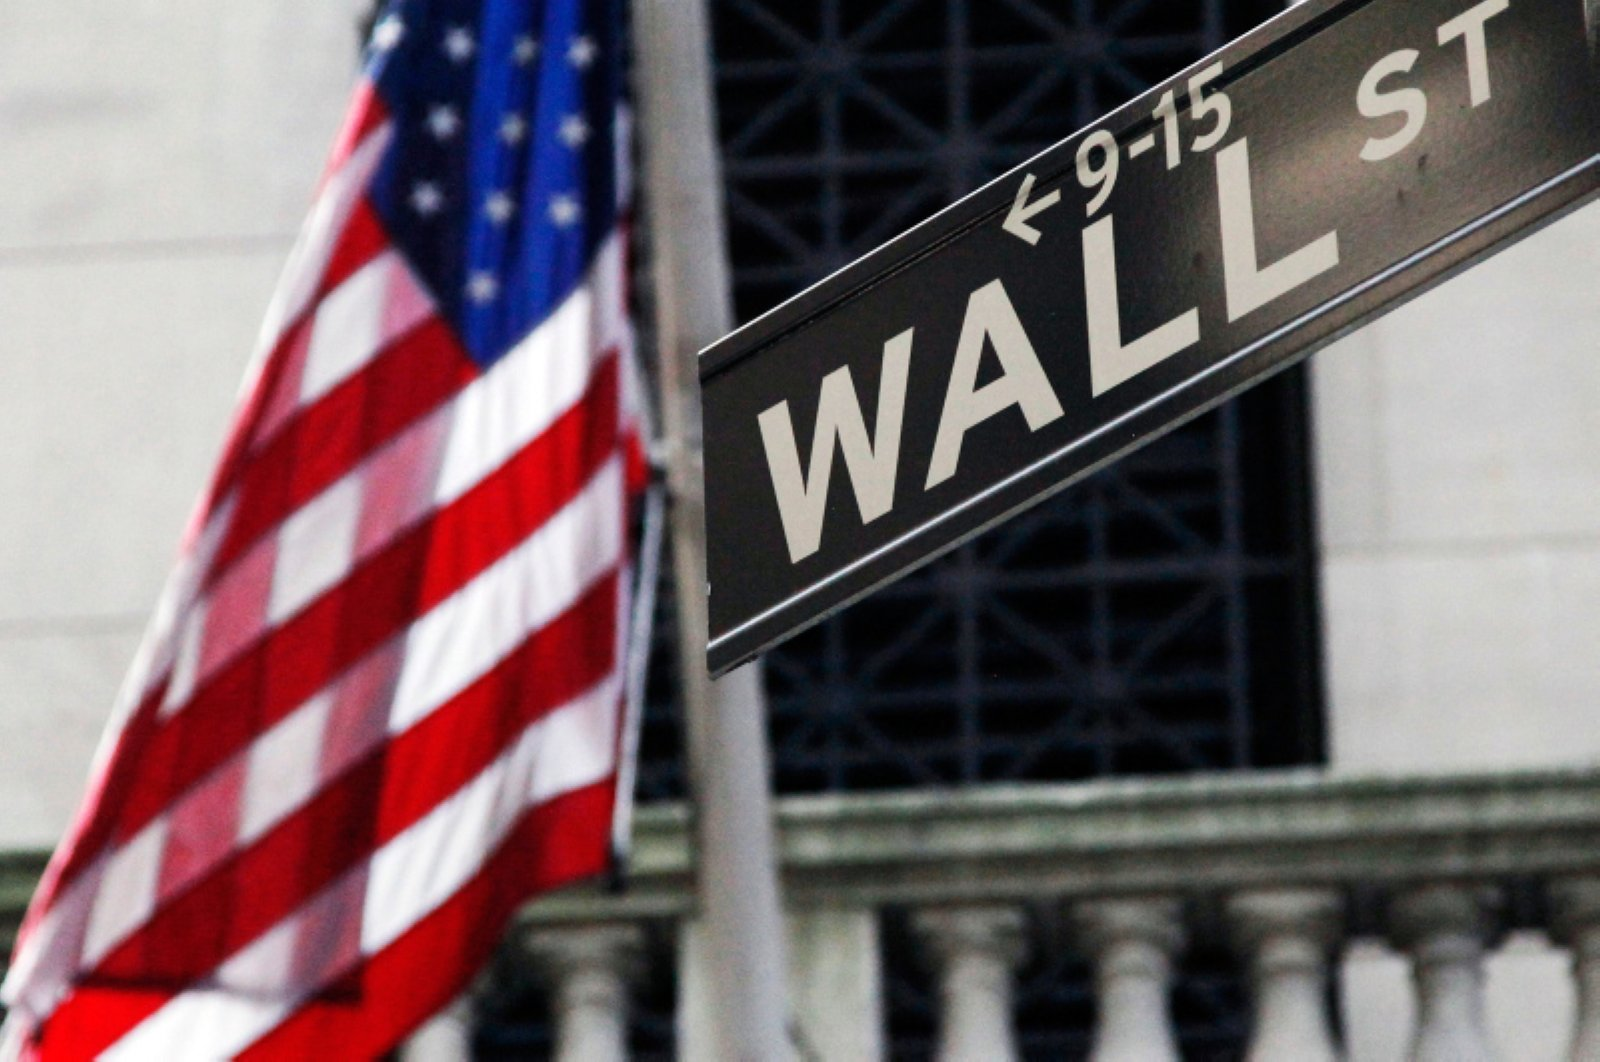 This Monday, July 15, 2013, file photo shows the American flag and Wall Street sign outside the New York Stock Exchange. (AP Photo)